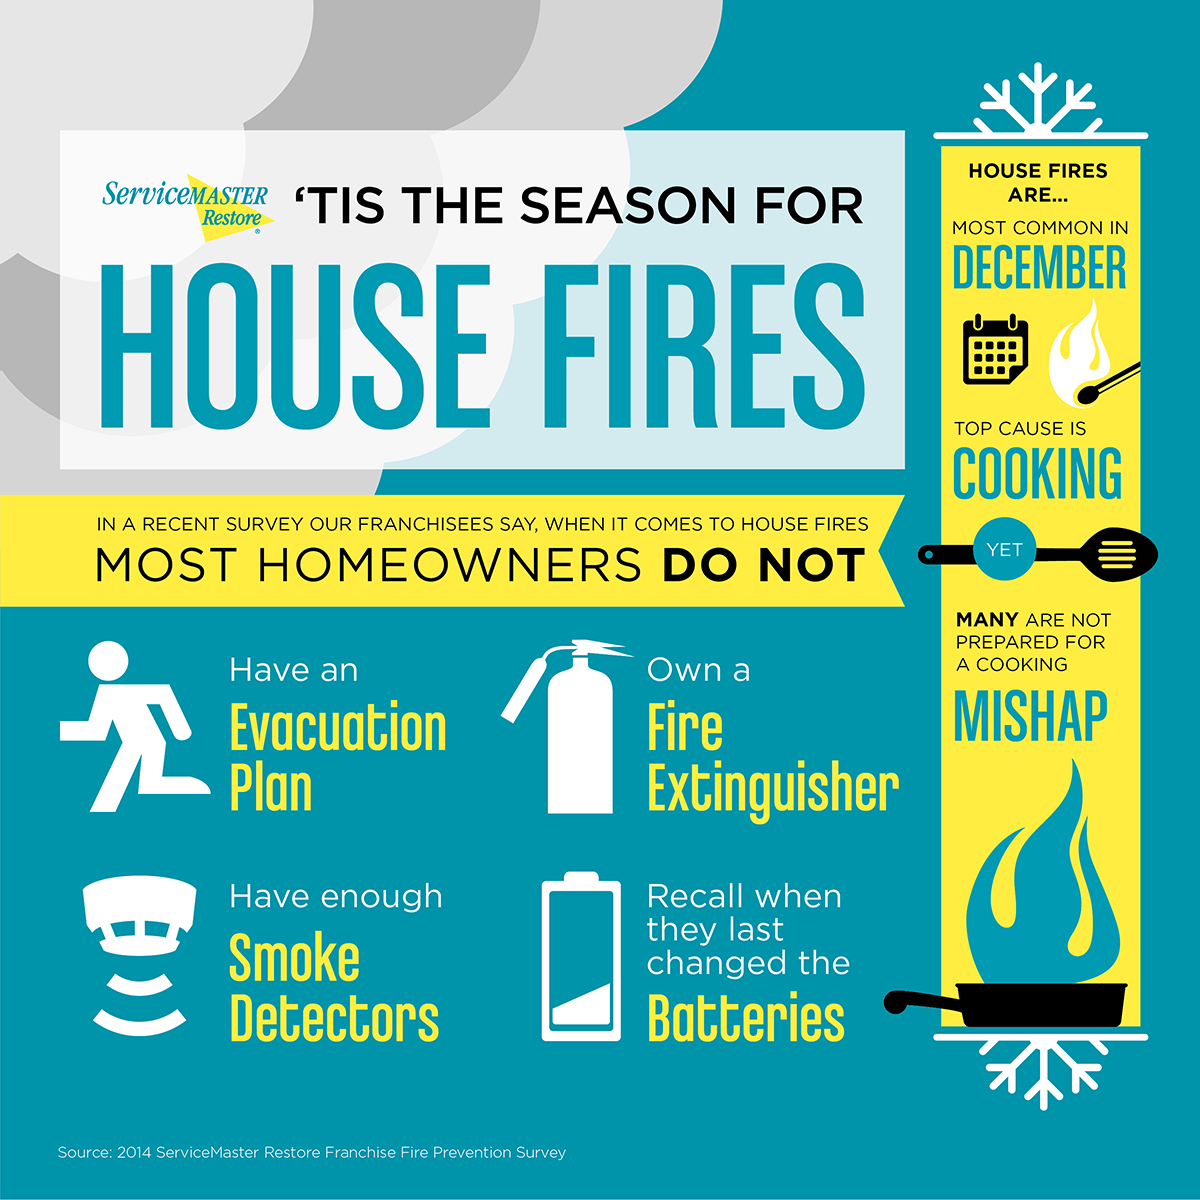 Servicemaster Restore Warns Homeowners To Practice Fire